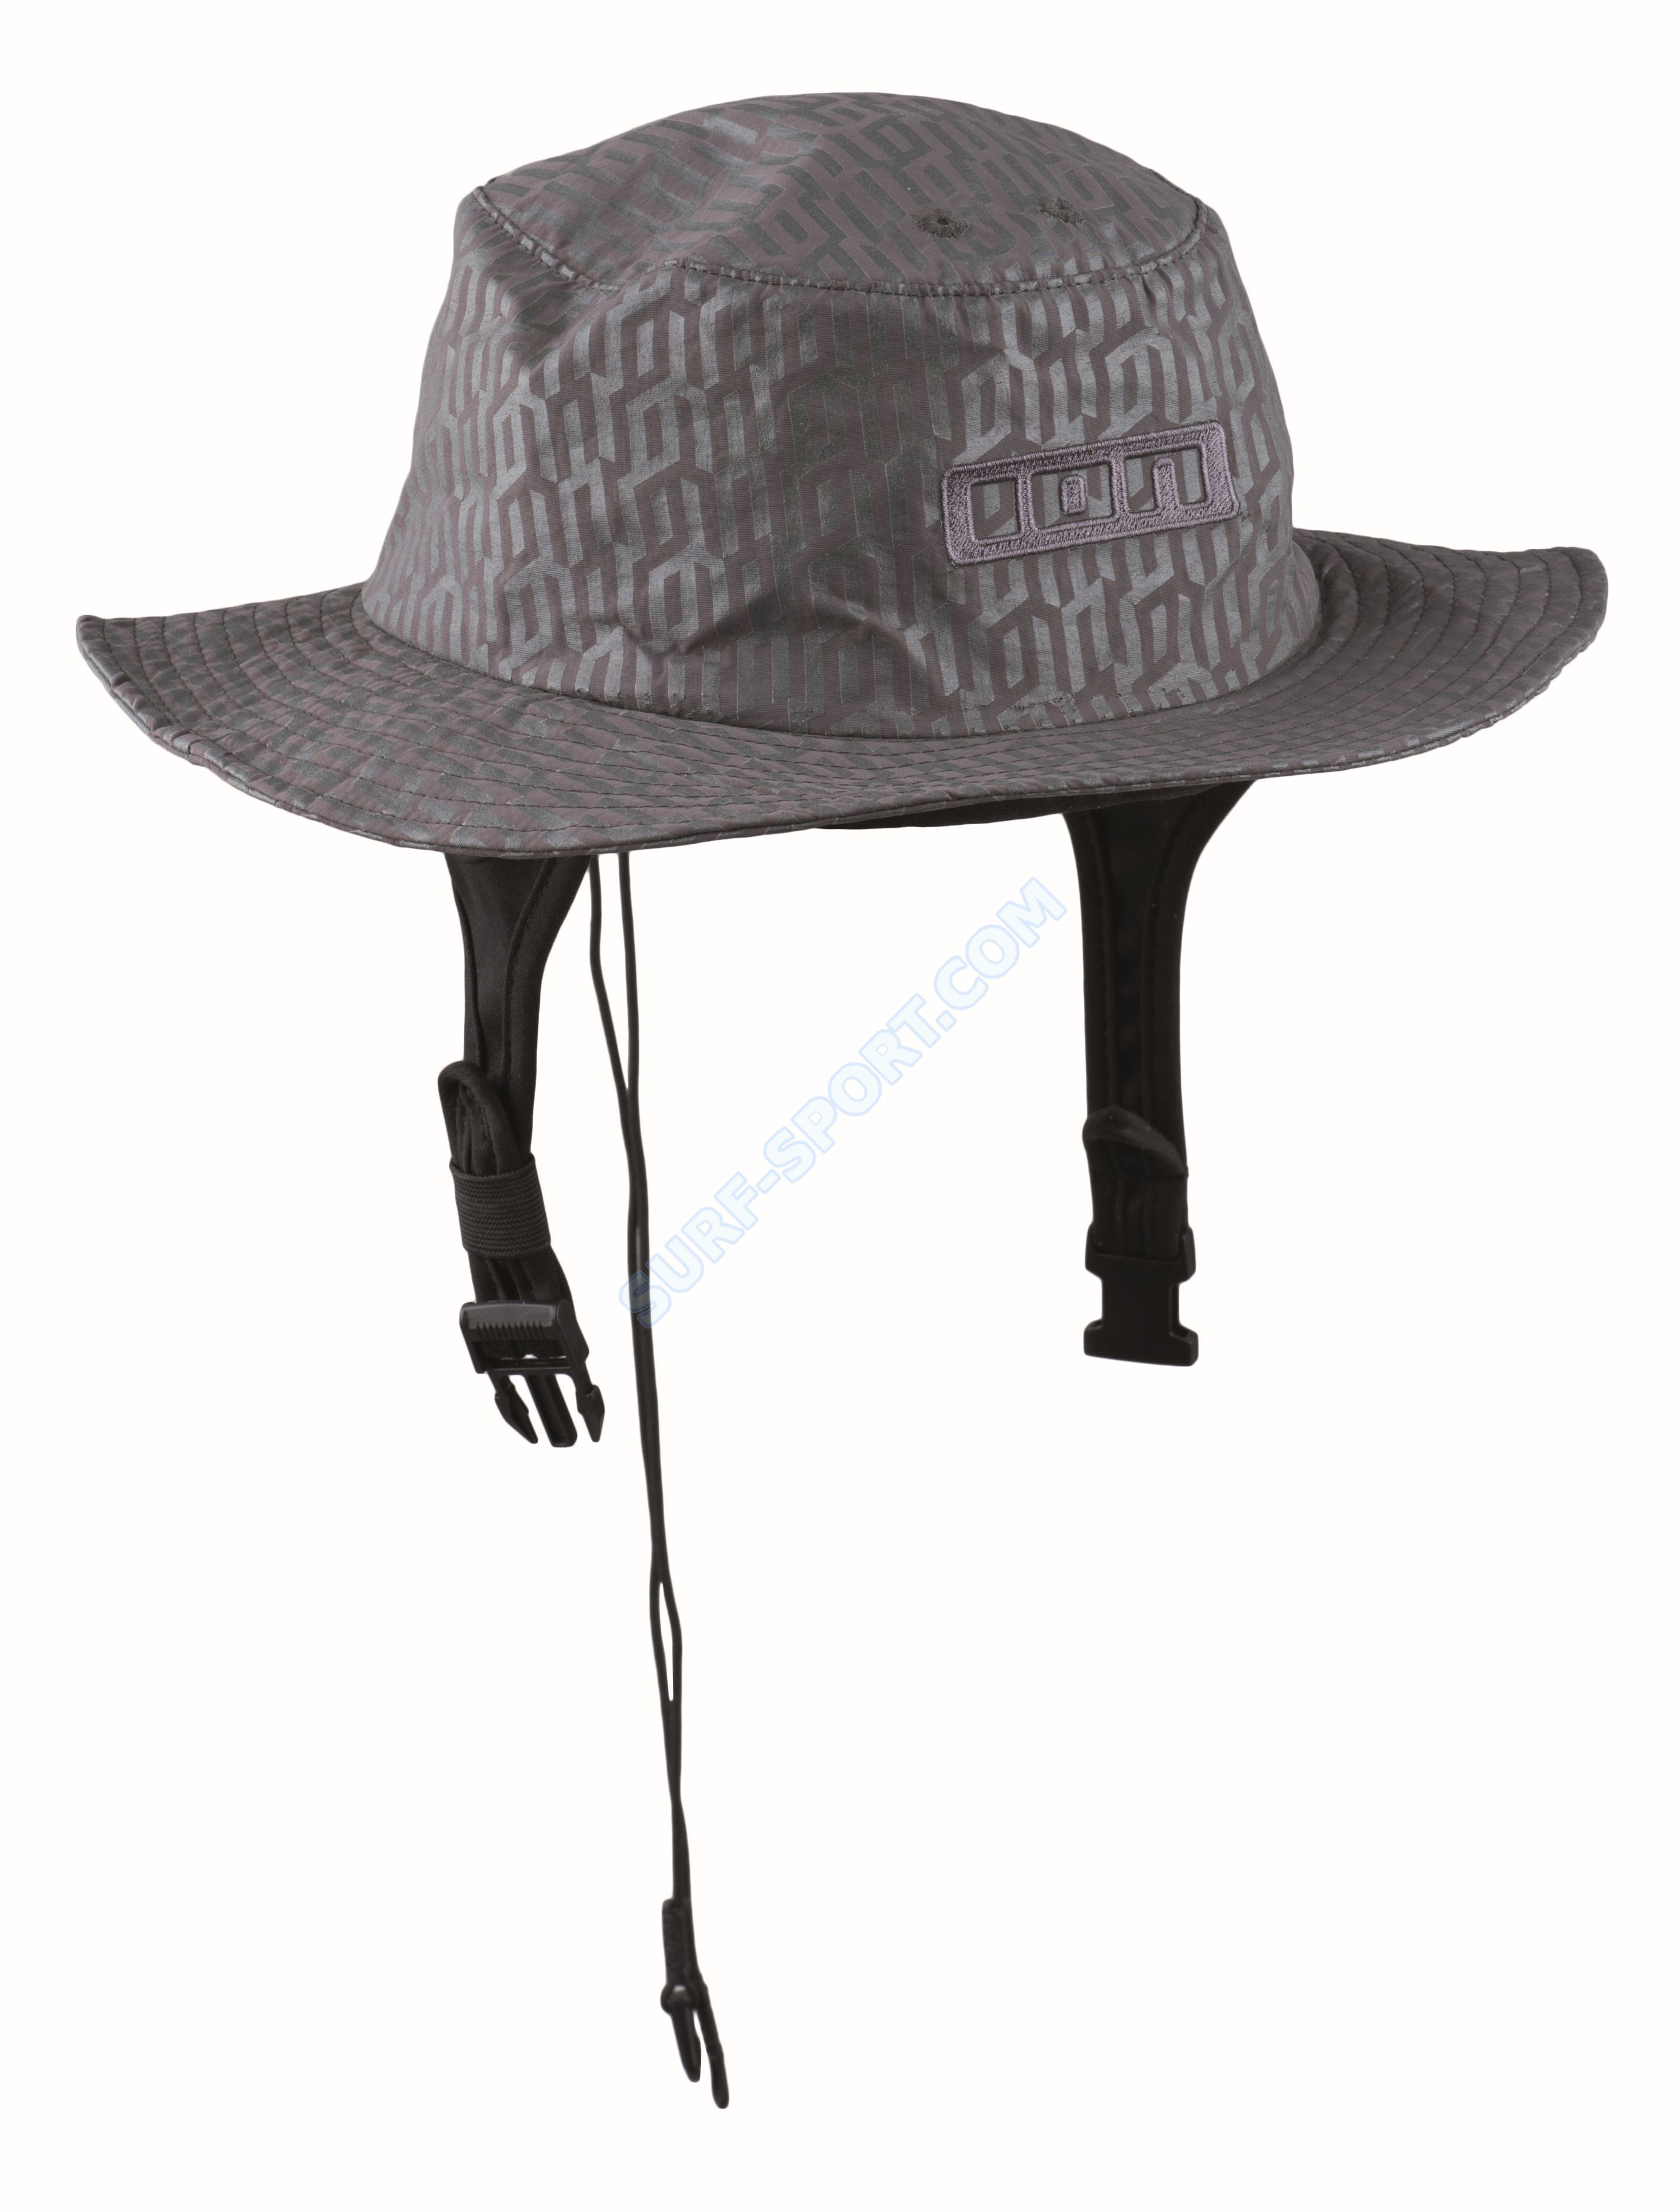 48130-5991_Beach_Hat_grey-2016.jpg